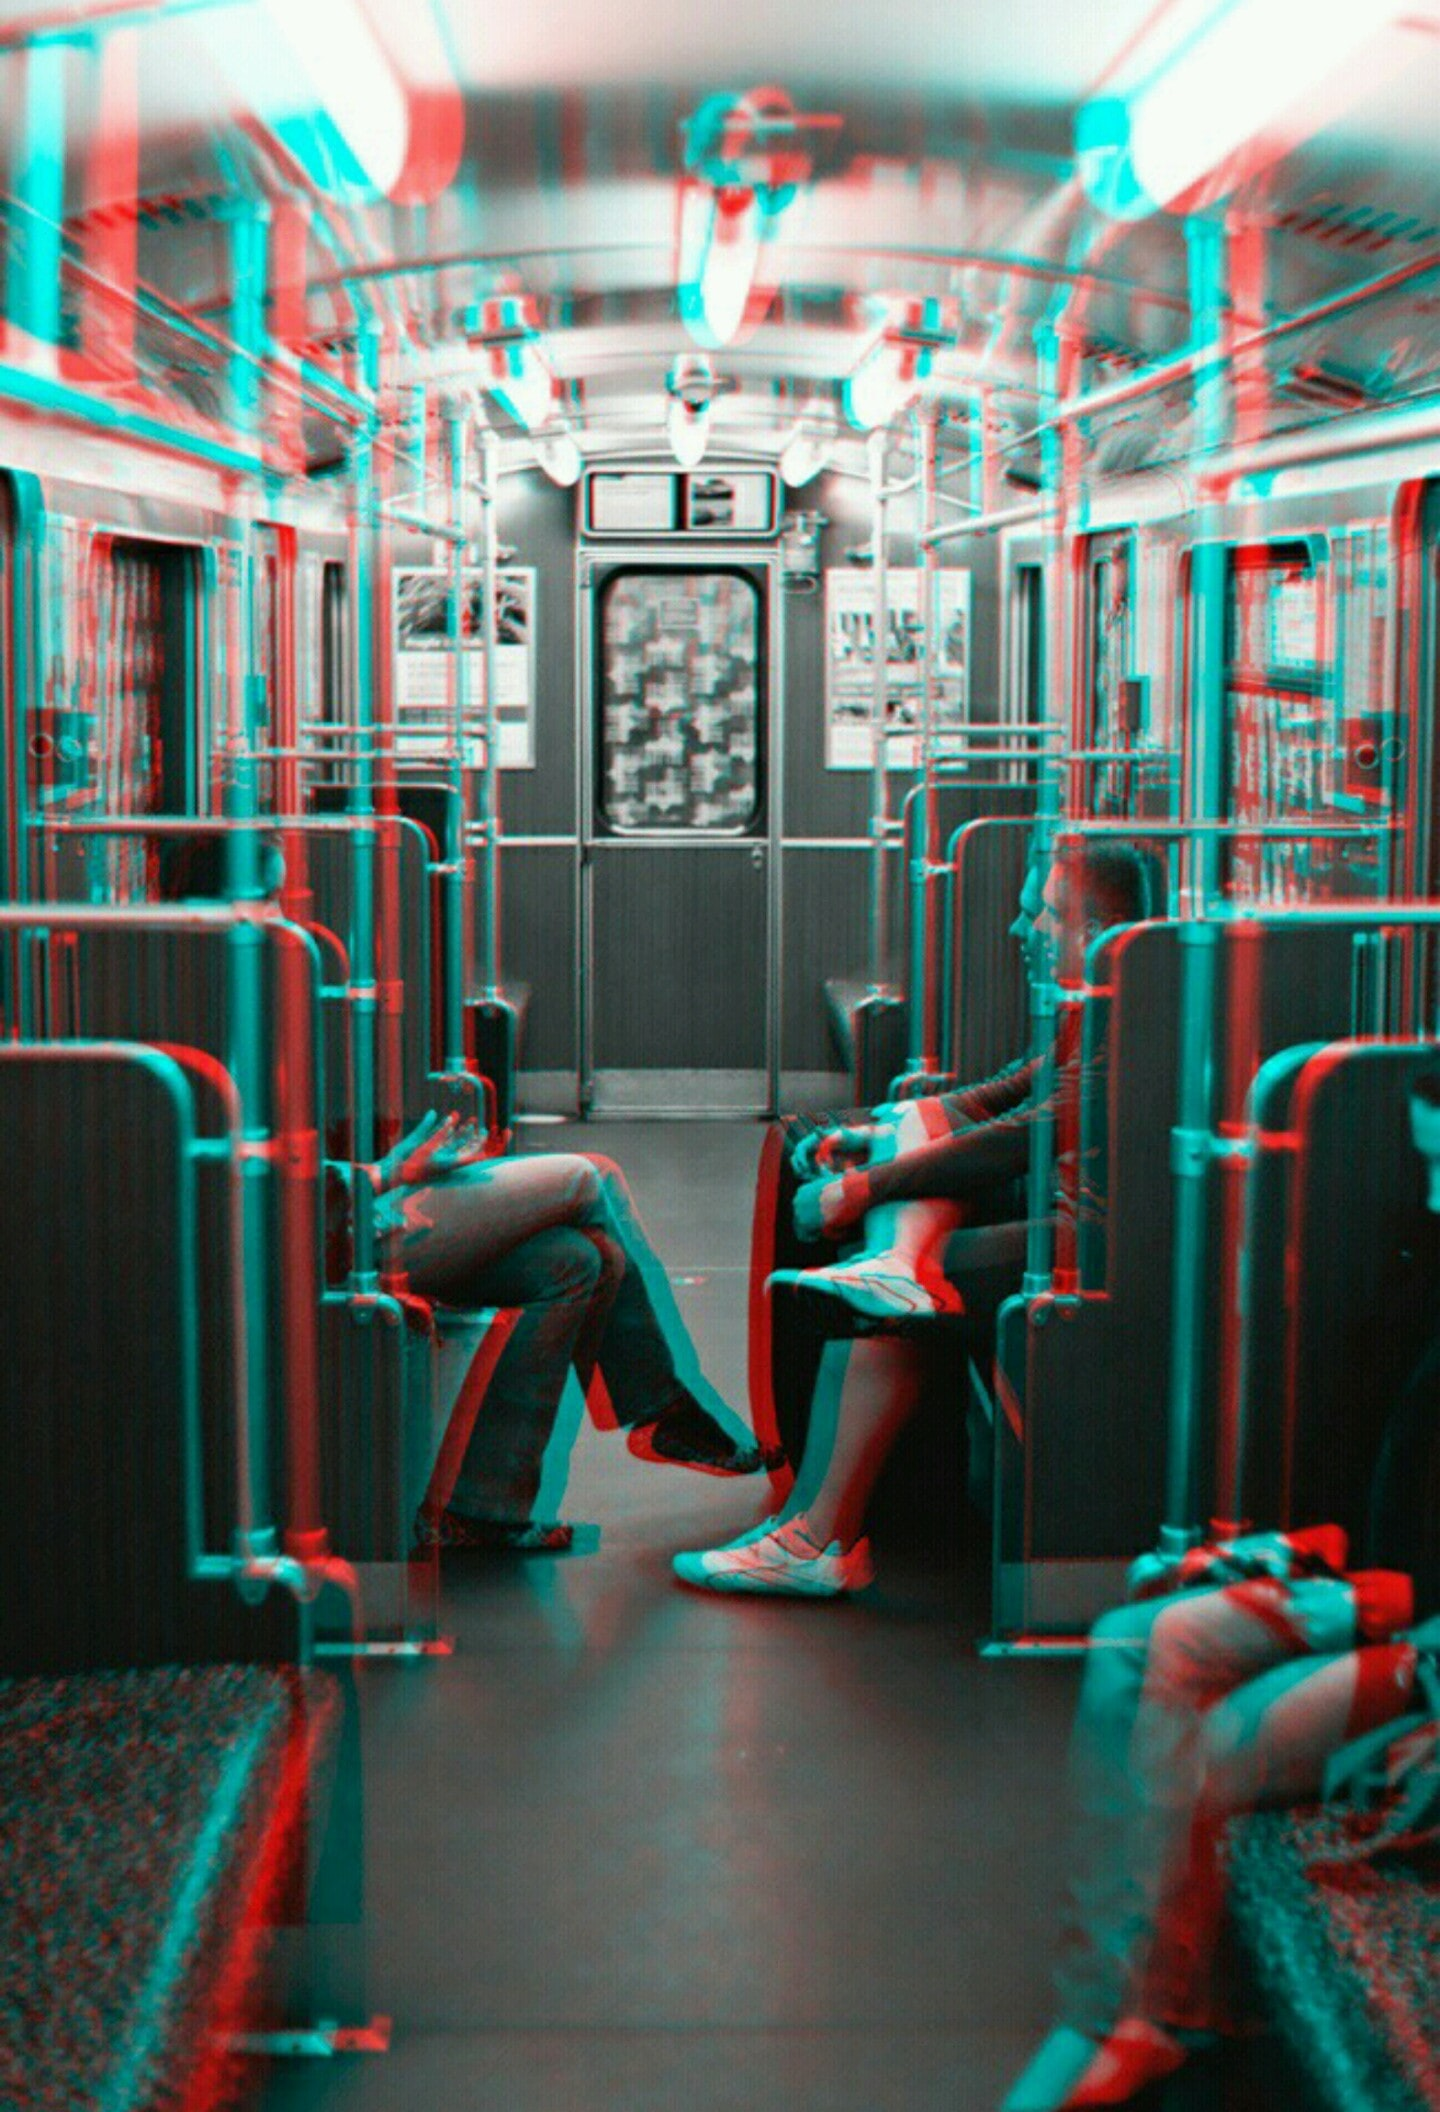 grayscale photo of two person facing each other while sitting inside train